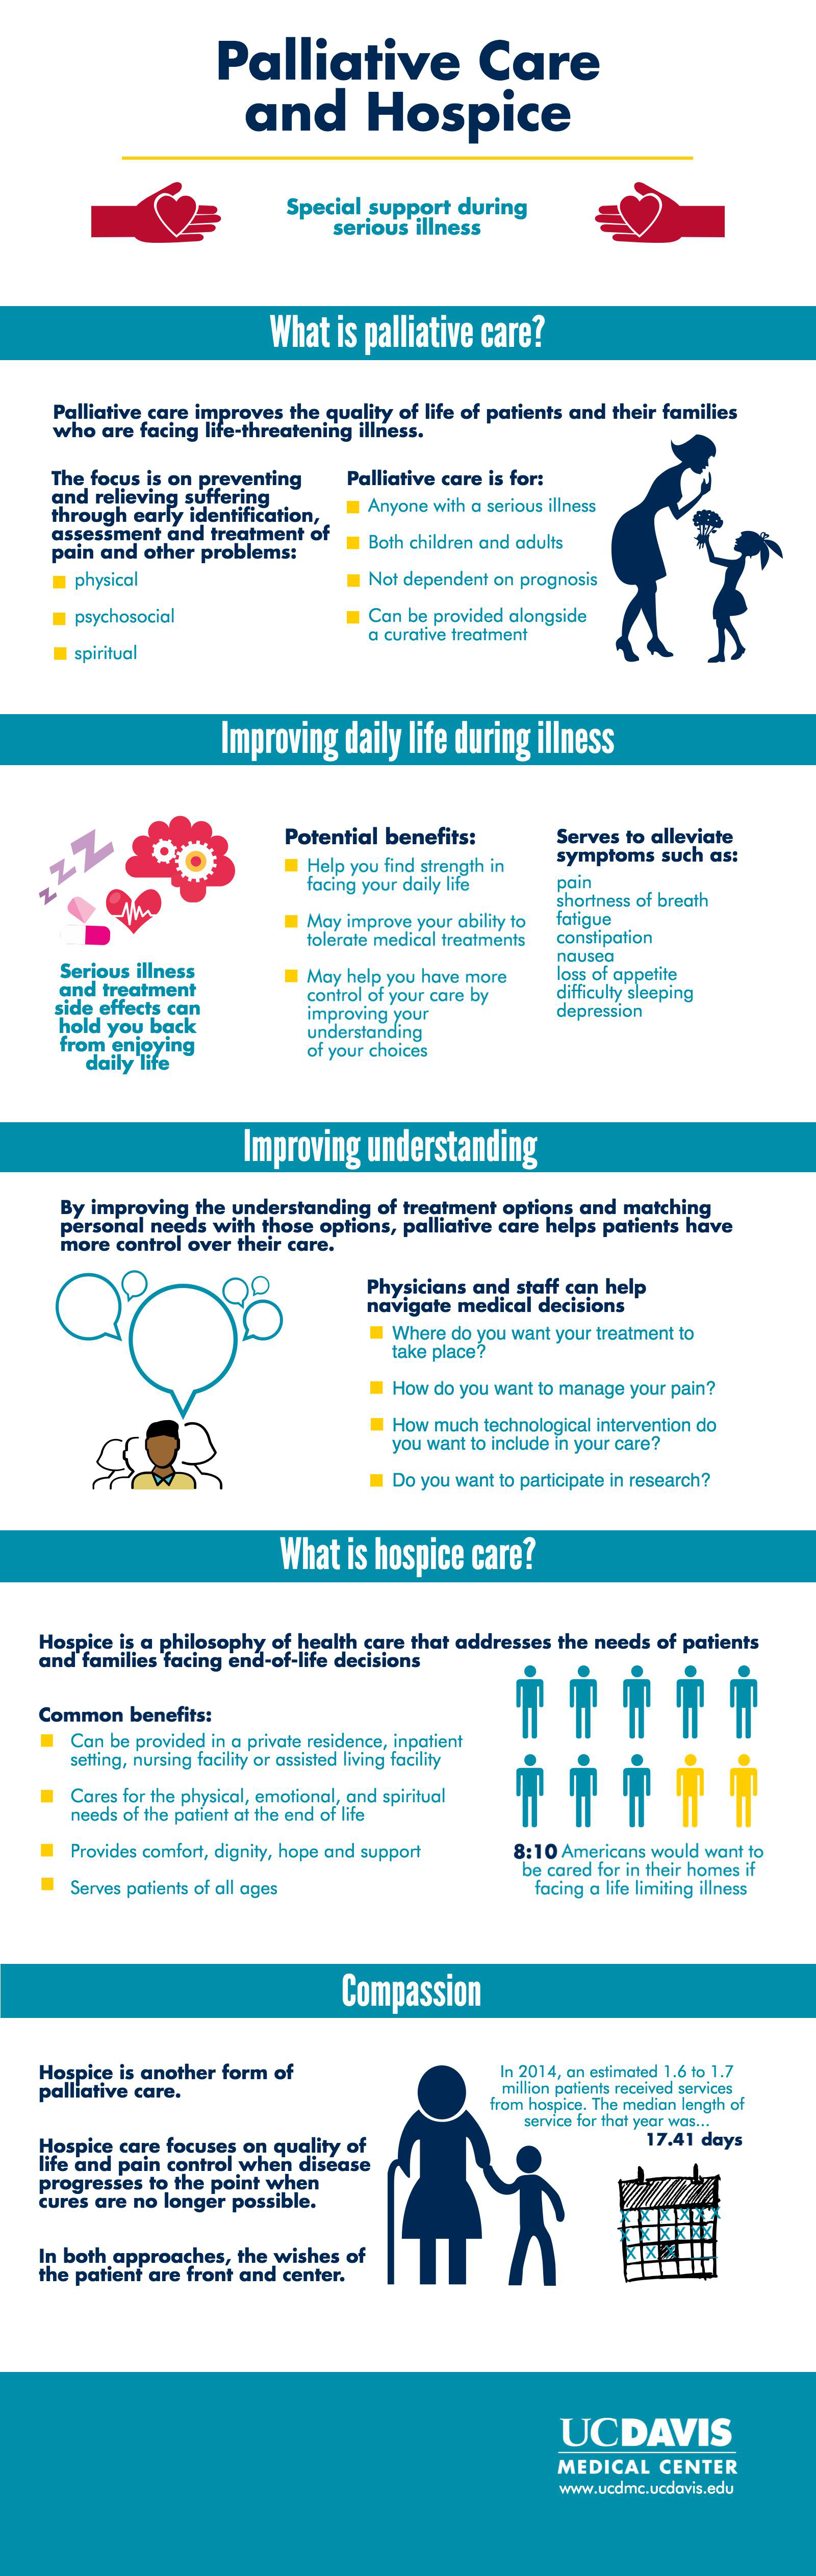 palliative care and hospice infographic @UC Regents